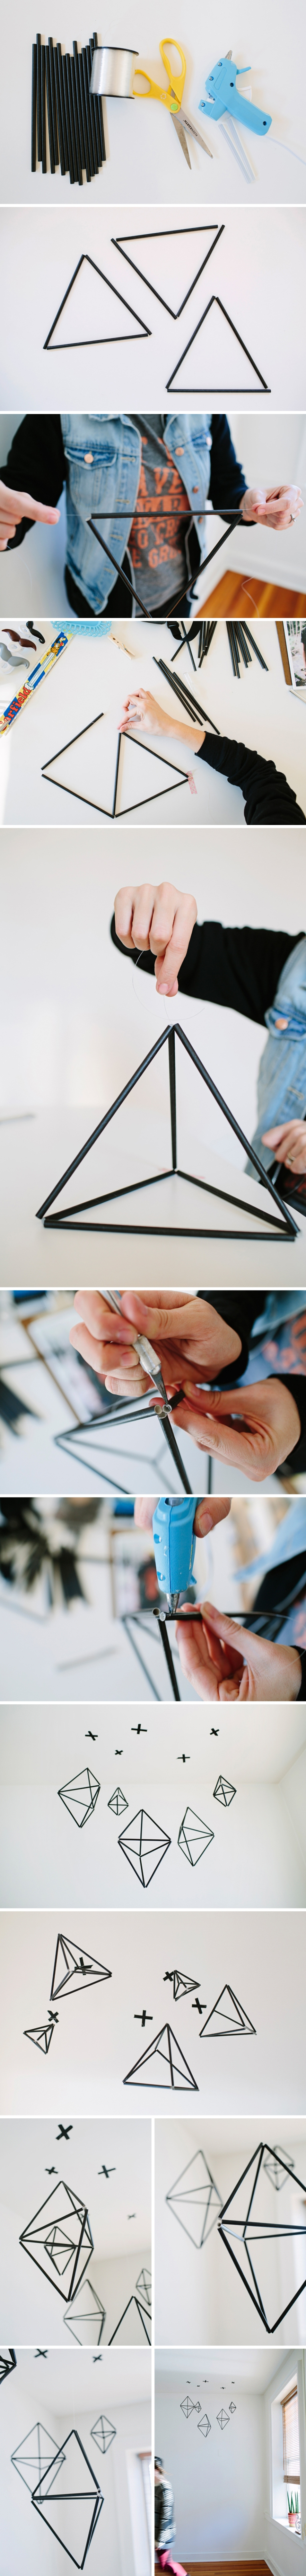 Tutorial completo em - http://shopwalkinlove.com/blogs/walk-in-love/12223817-geometric-straw-mobile